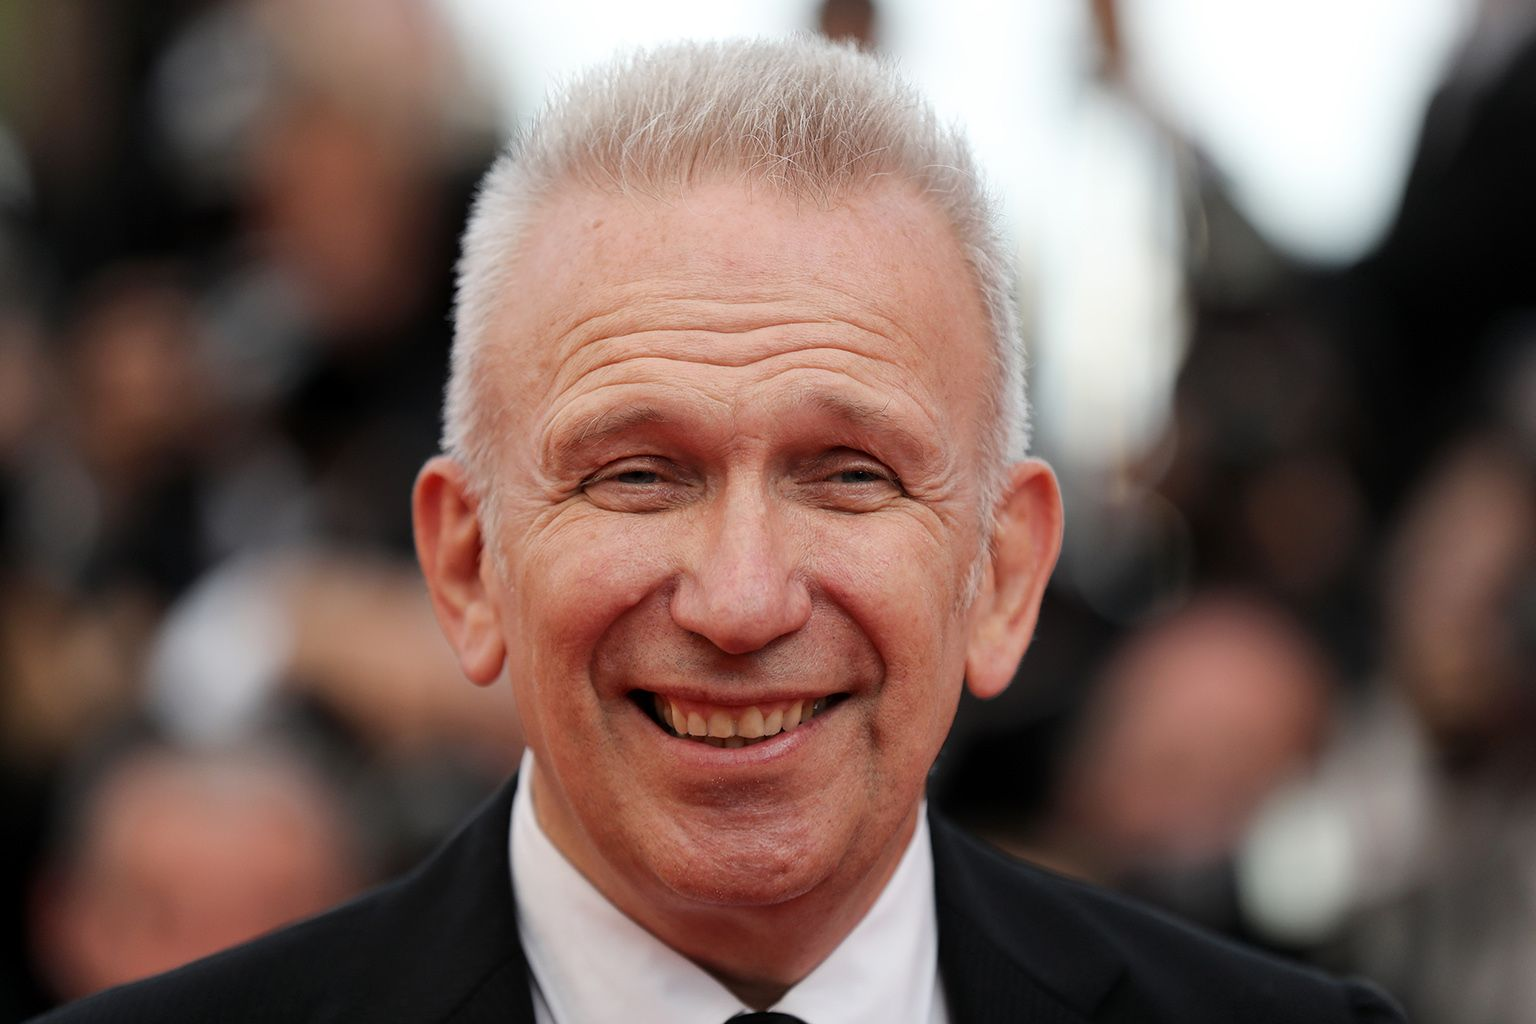 "(FILES) This file photo taken on May 23, 2017 shows French fashion designer Jean-Paul Gaultier arriving for the ""70th Anniversary"" ceremony of the Cannes Film Festival in Cannes, southern France. In October 2018, Jean Paul Gaultier, will sign and stage at the Folies Bergeres a  show evoking his career through half a century of pop culture and fashion, he told AFP on November 8, 2017. / AFP PHOTO / Valery HACHE"